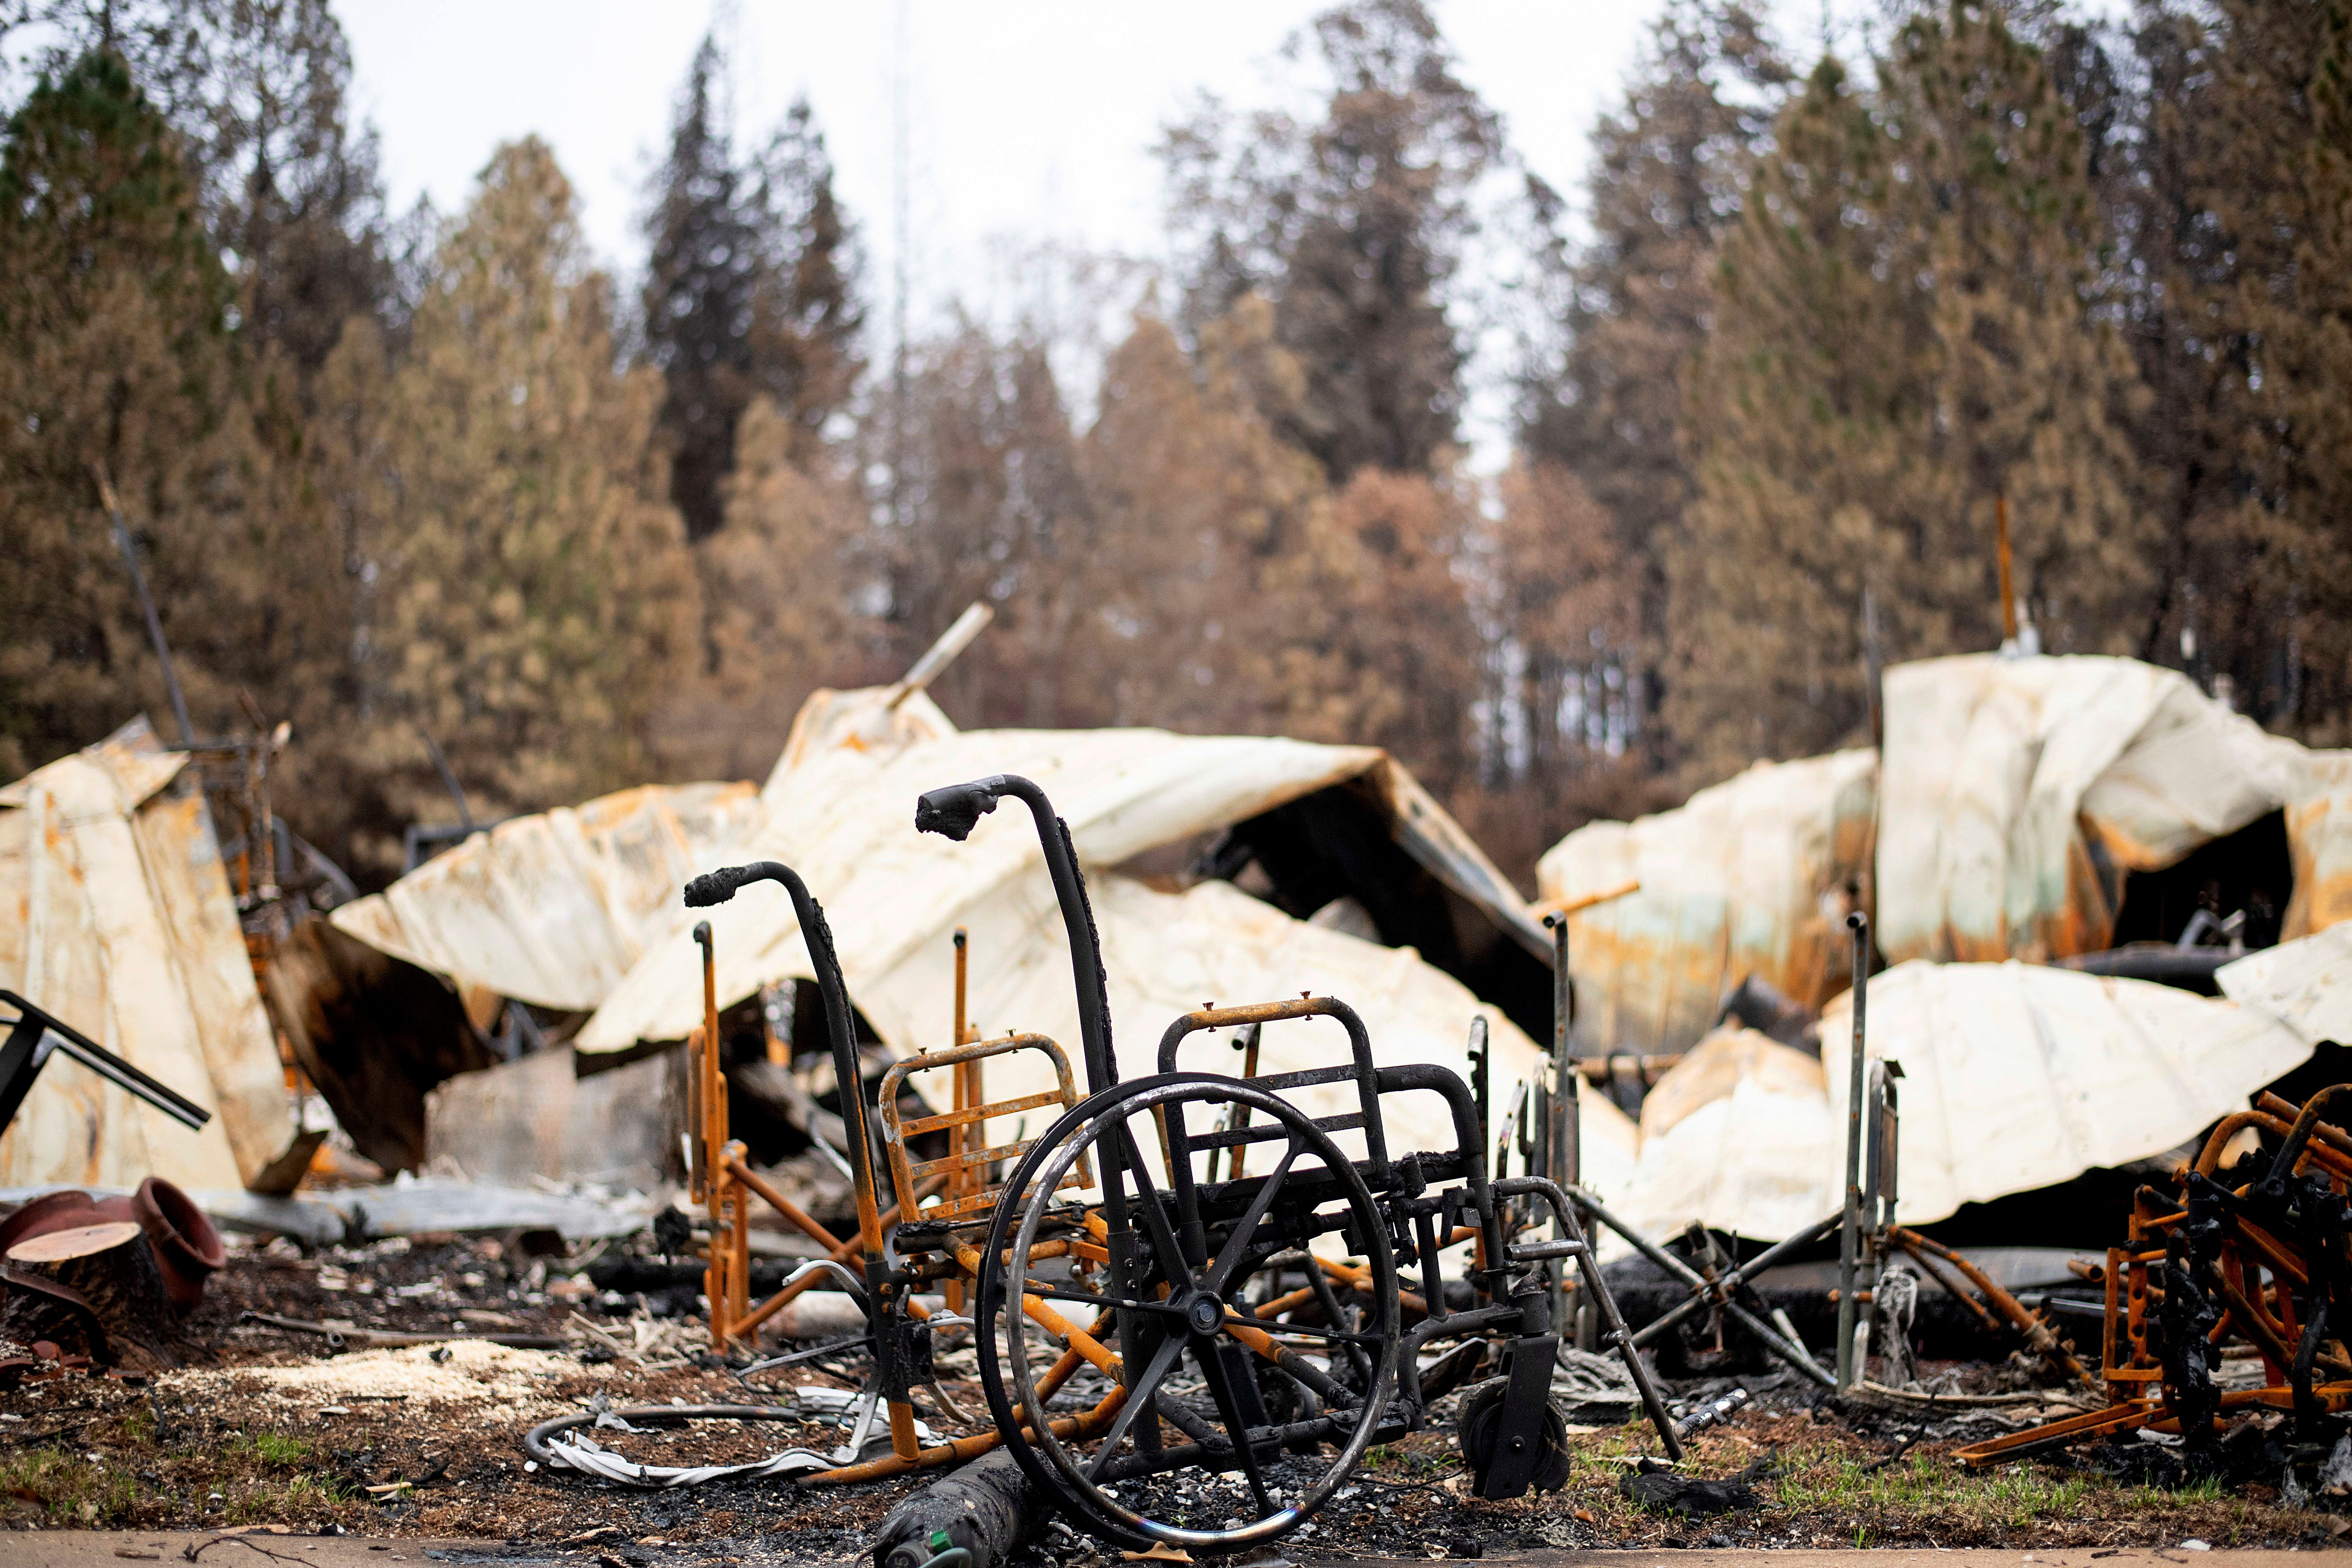 Emergency responders found several wheelchairs and walkers in the remains of Paradise, Calif. after the Camp fire wiped out t